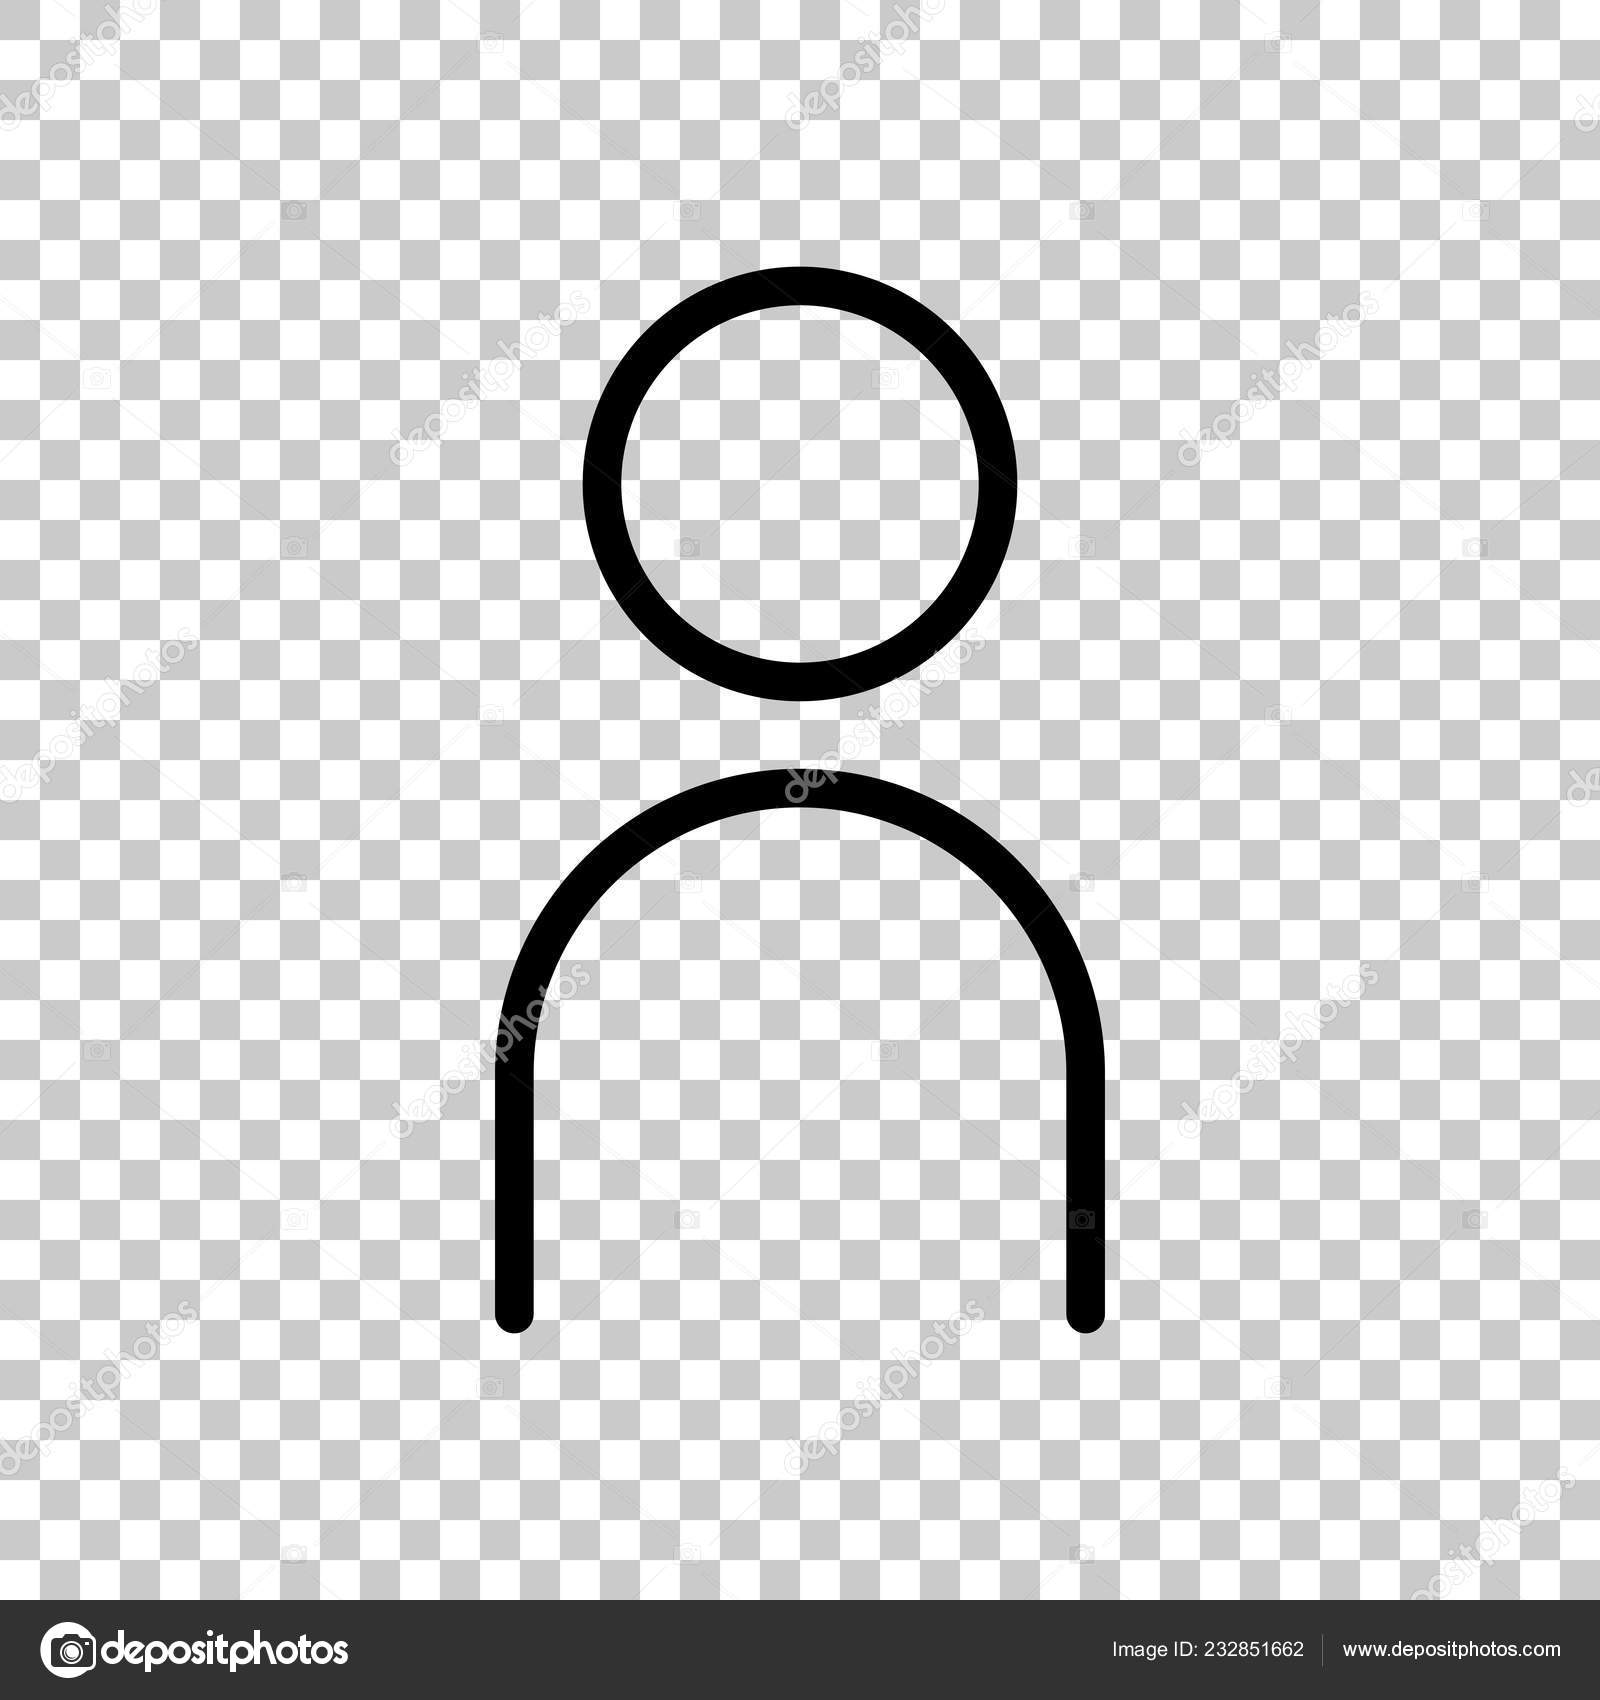 Background Simple Human Outline Simple Person Icon Linear Symbol Thin Outline Transparent Background Stock Vector C Fokas Pokas 232851662 Icons can have and usually have transparent regions. depositphotos